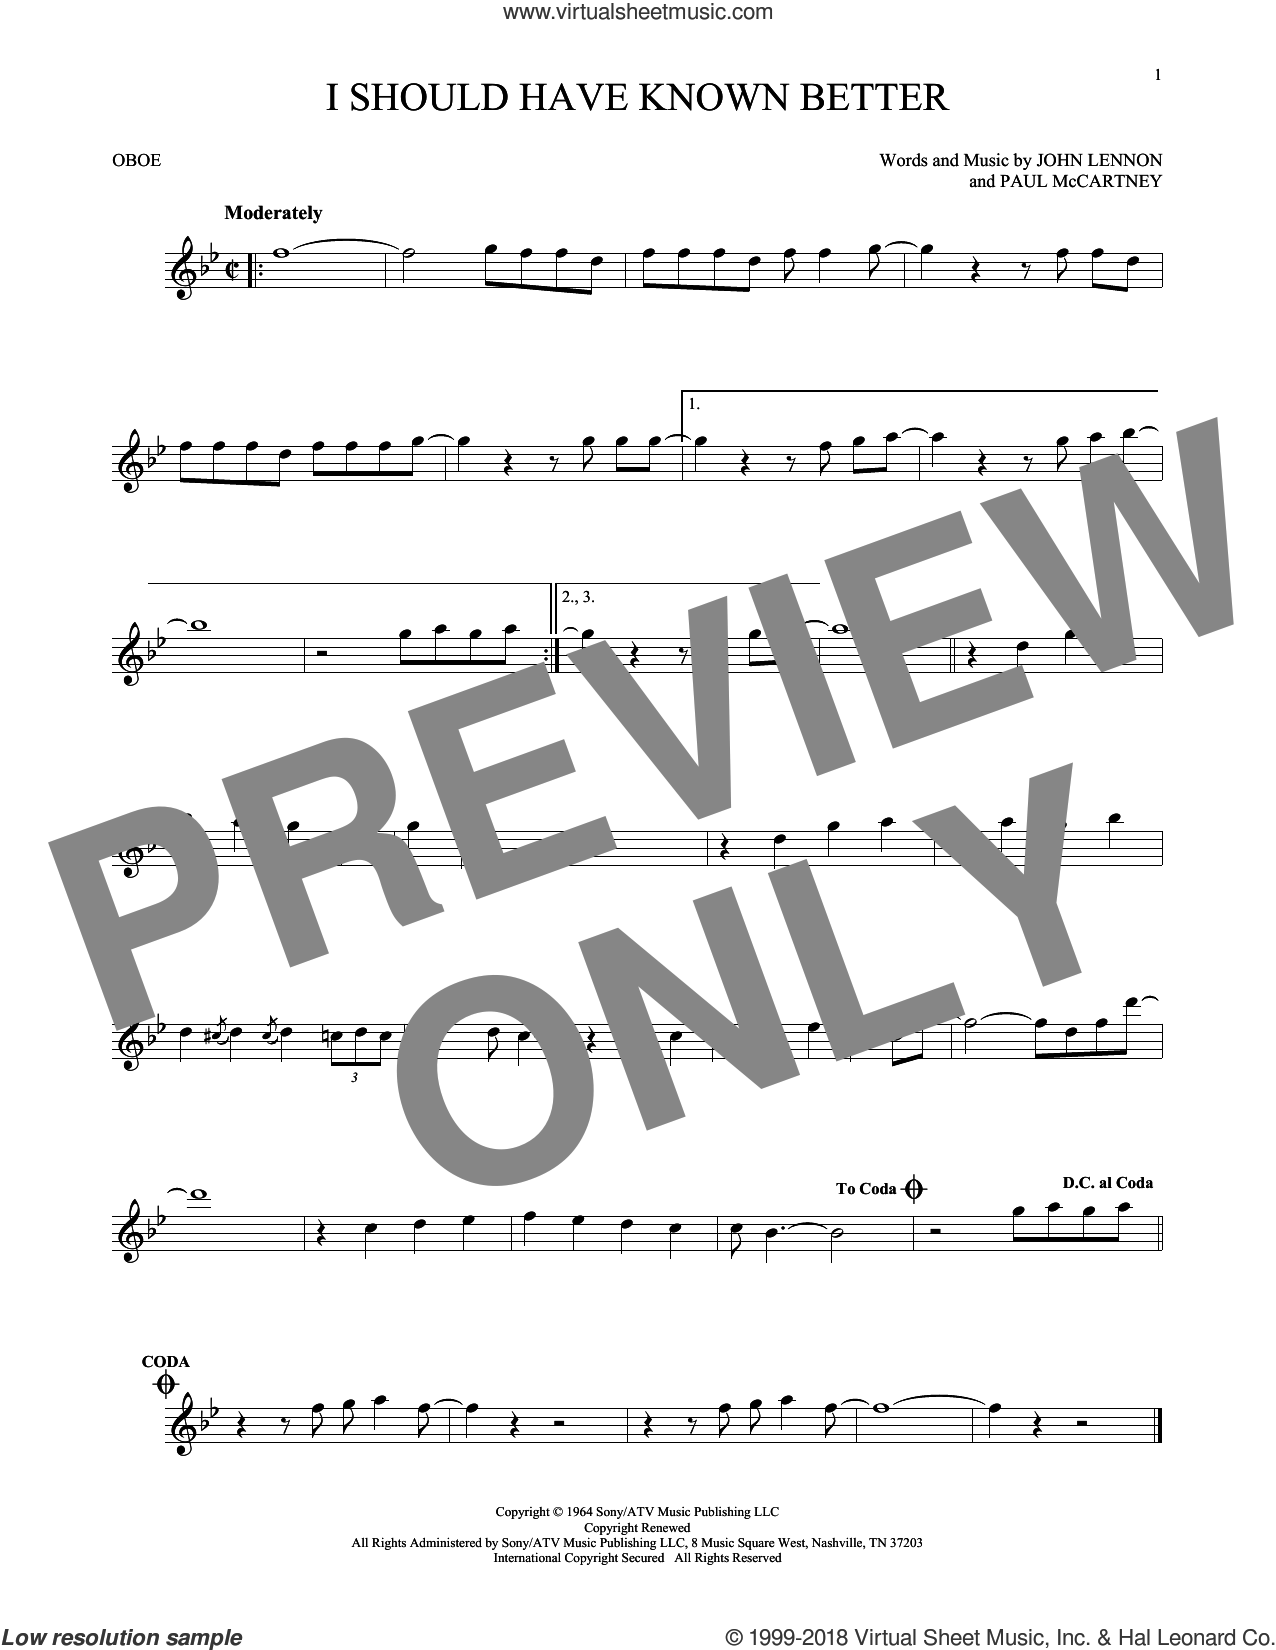 I Should Have Known Better sheet music for oboe solo by The Beatles, John Lennon and Paul McCartney, intermediate. Score Image Preview.